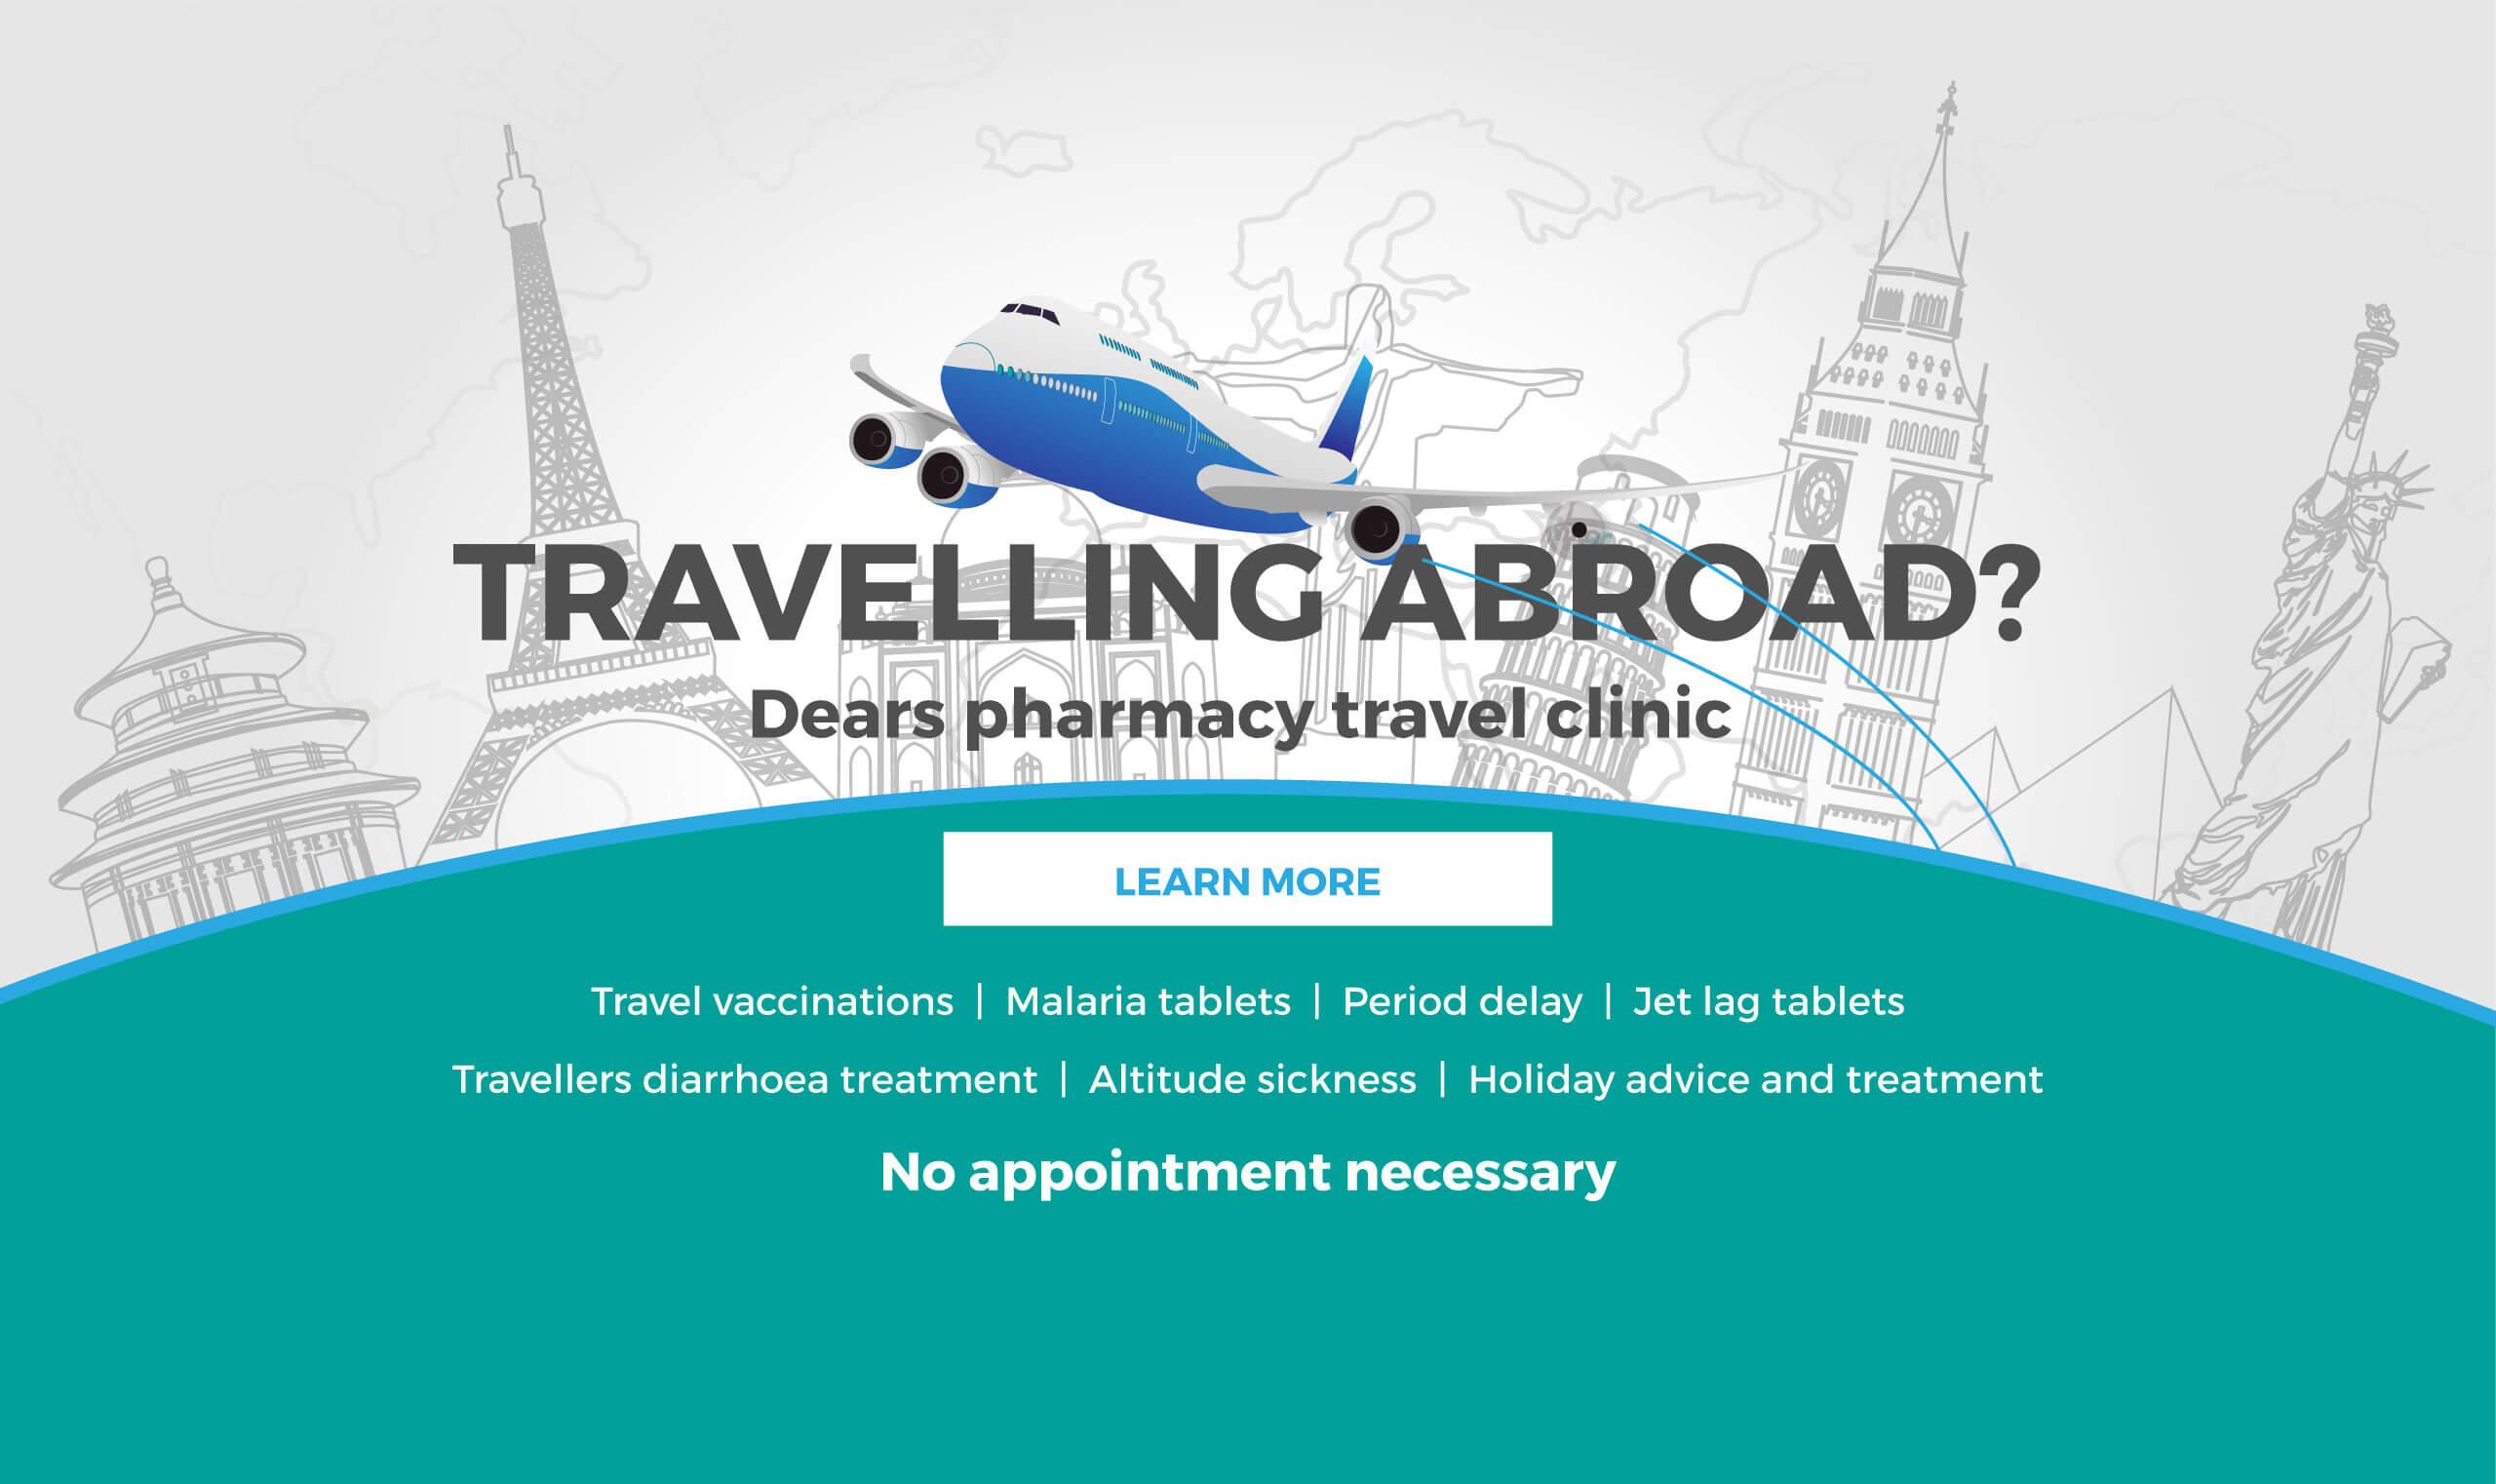 Dears Pharmacy Travelling Abroad?